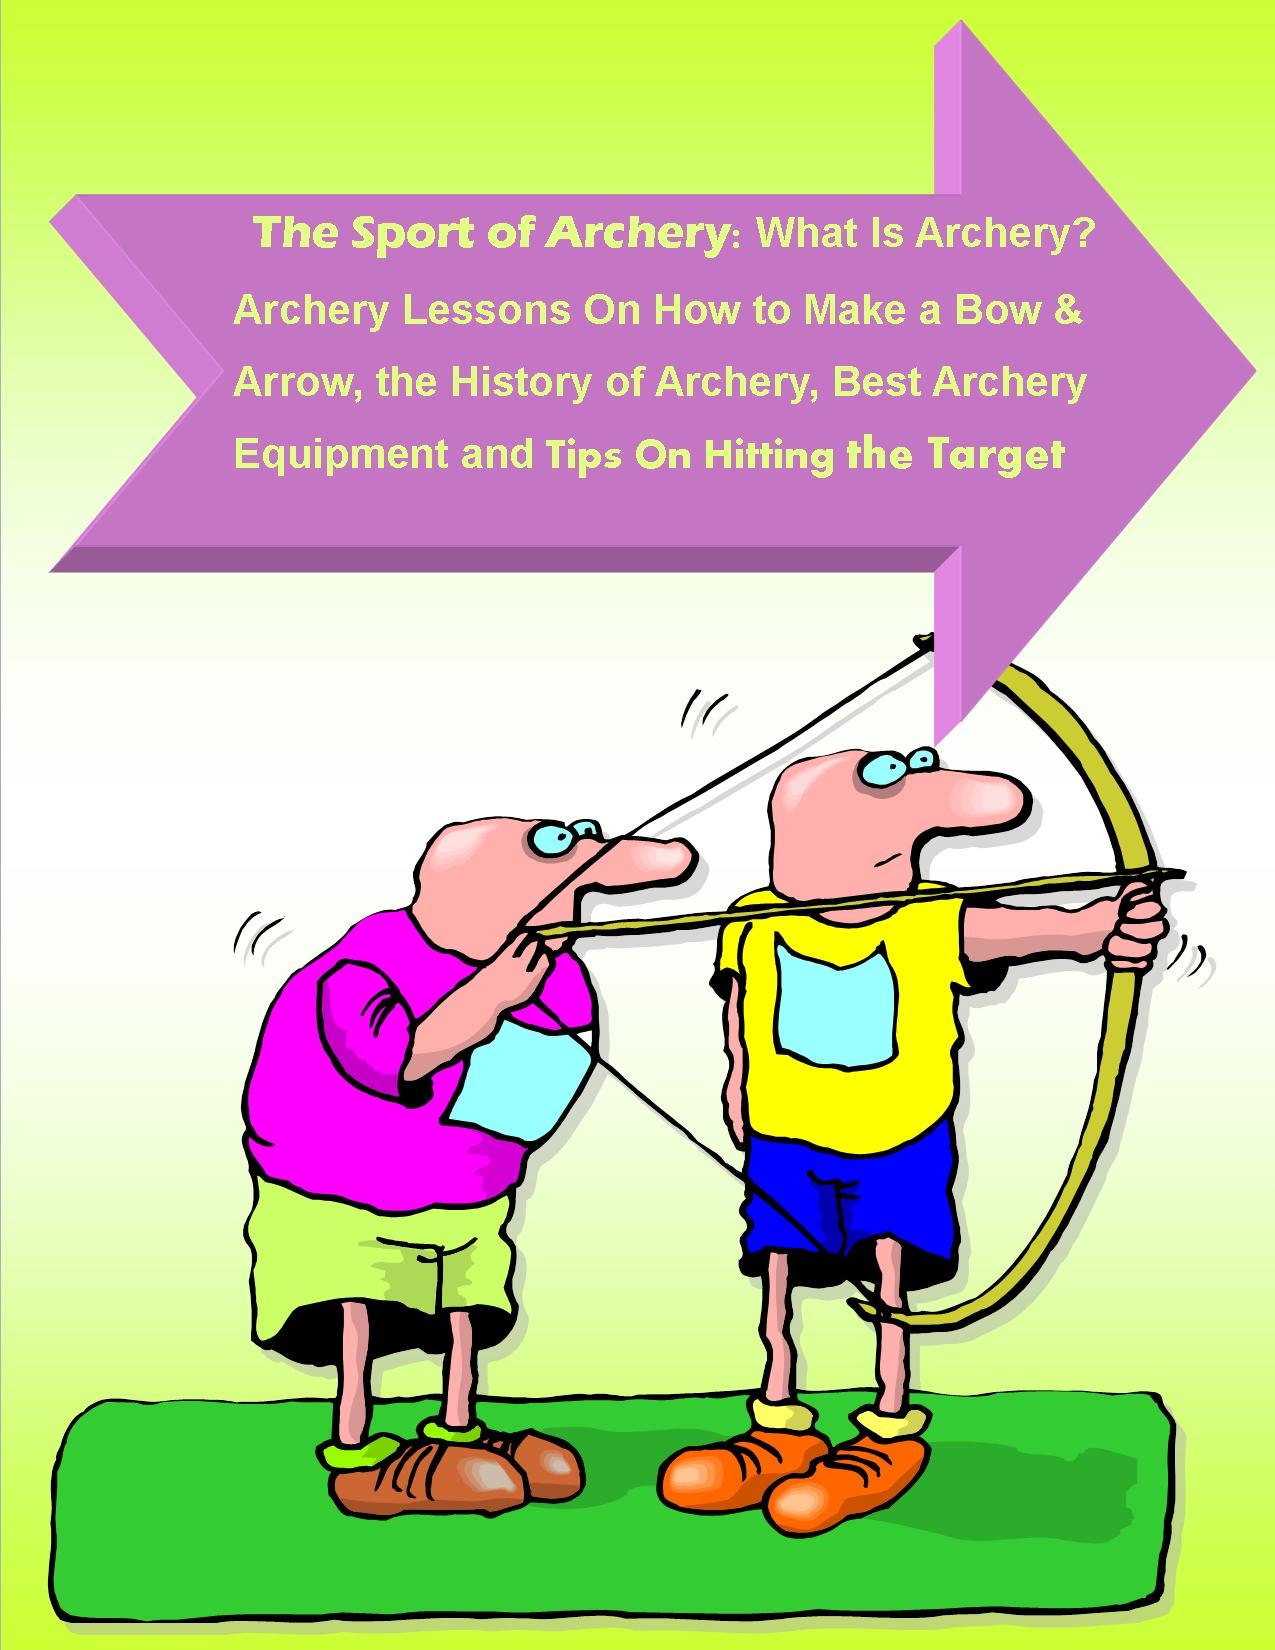 The Sport of Archery: What Is Archery? Archery Lessons On How to Make a Bow and Arrow, the History of Archery, Best Archery Equipment and Tips On Hitting the Target